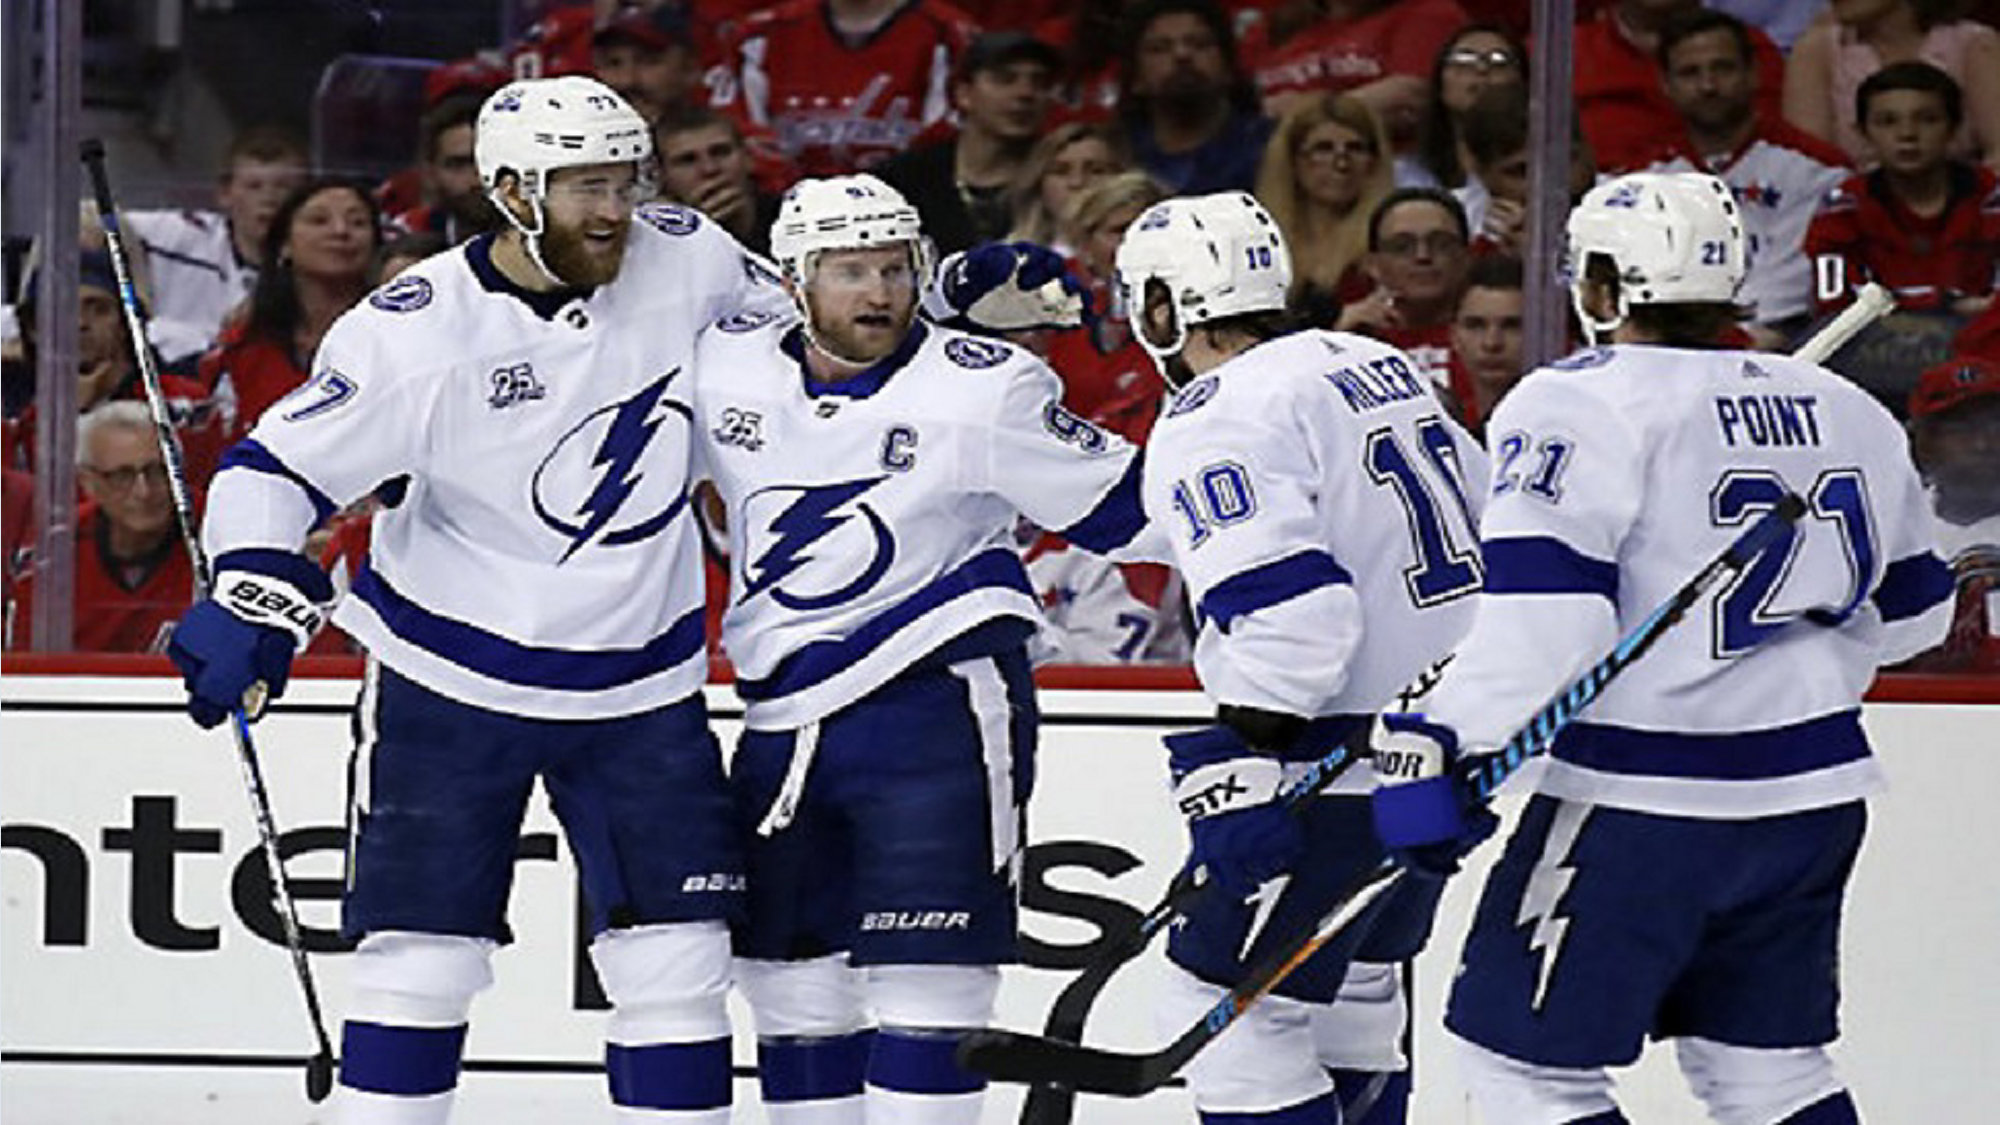 f96a6ea4 Single-Game Tampa Bay Lightning Tickets Now on Sale